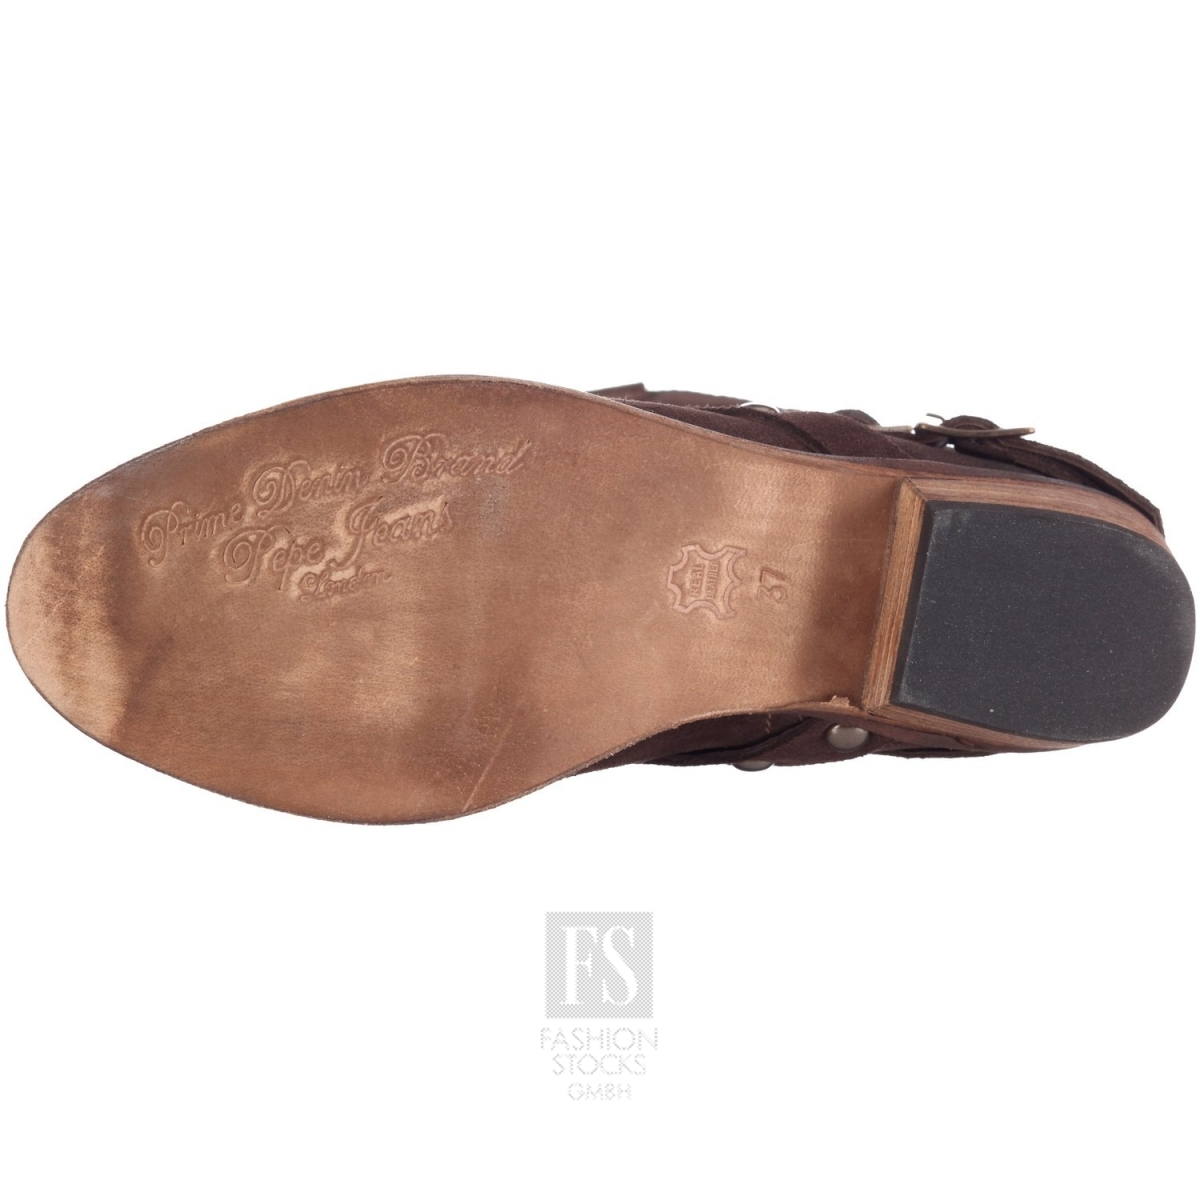 Women shoes - Pepe Jeans